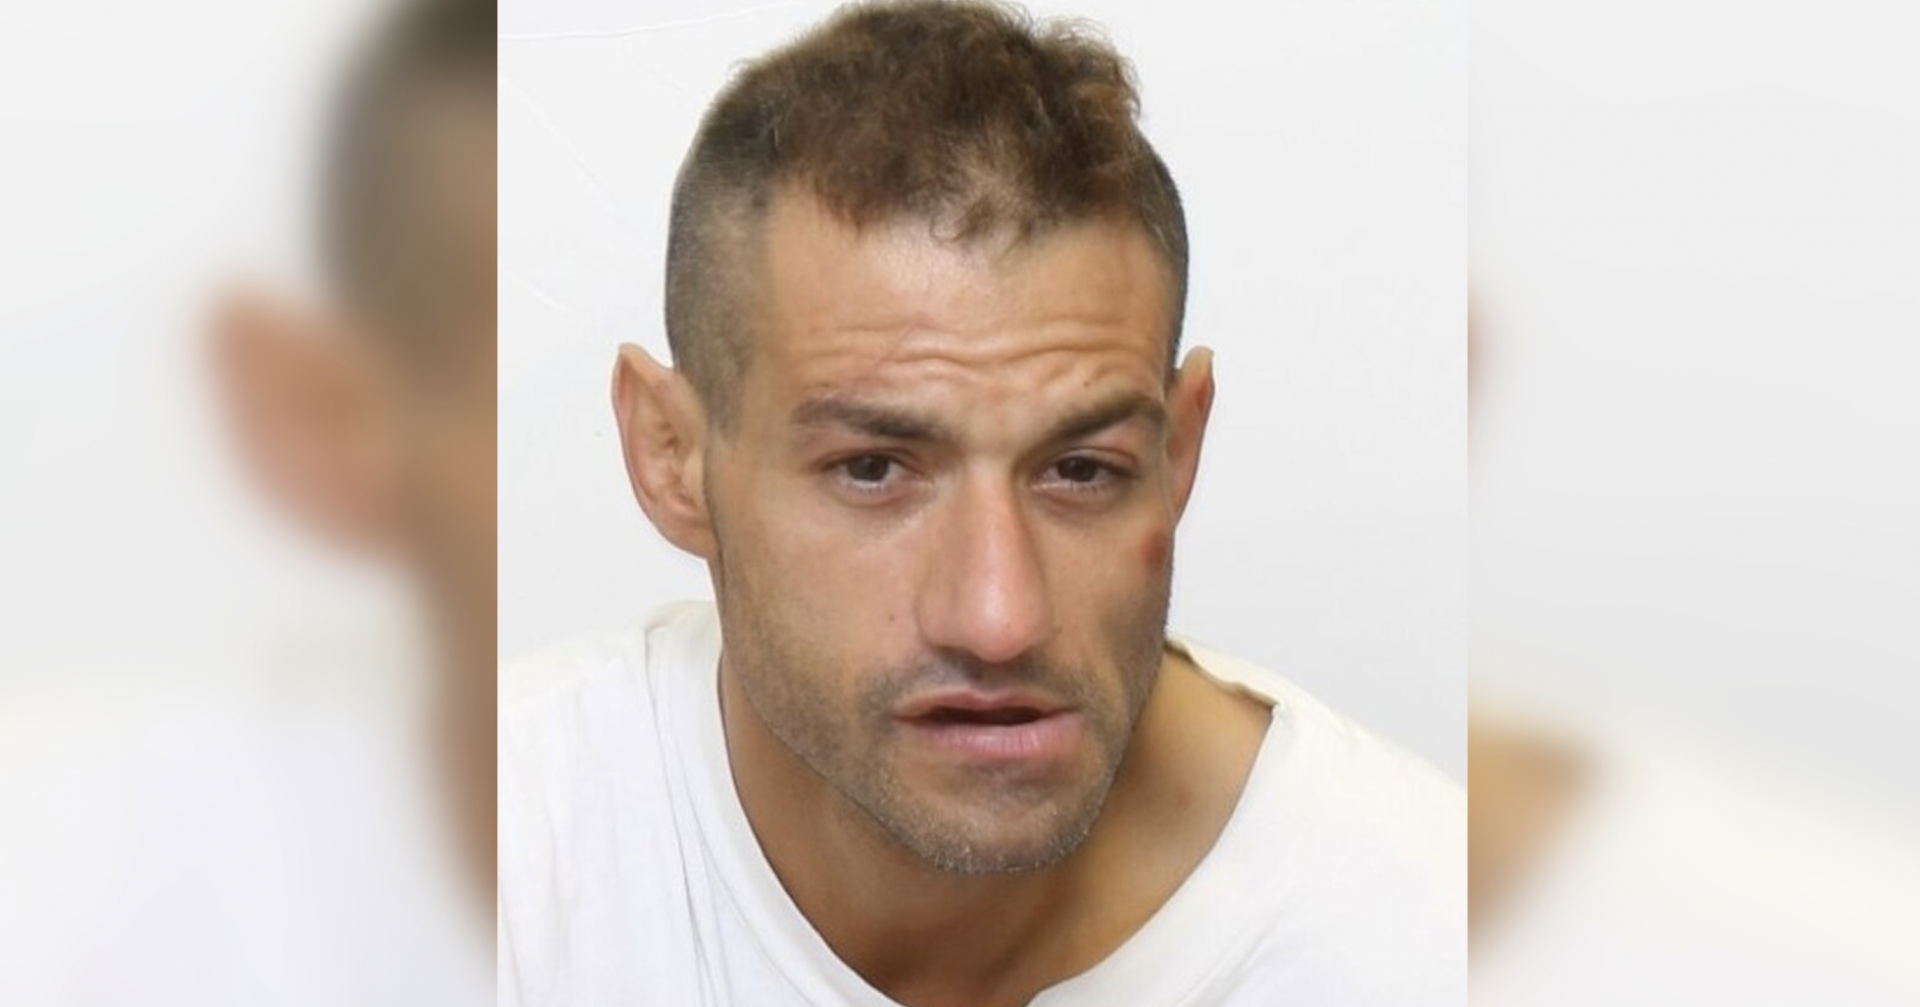 Woman returns home to find man in her apartment wearing her clothes, cooked meal